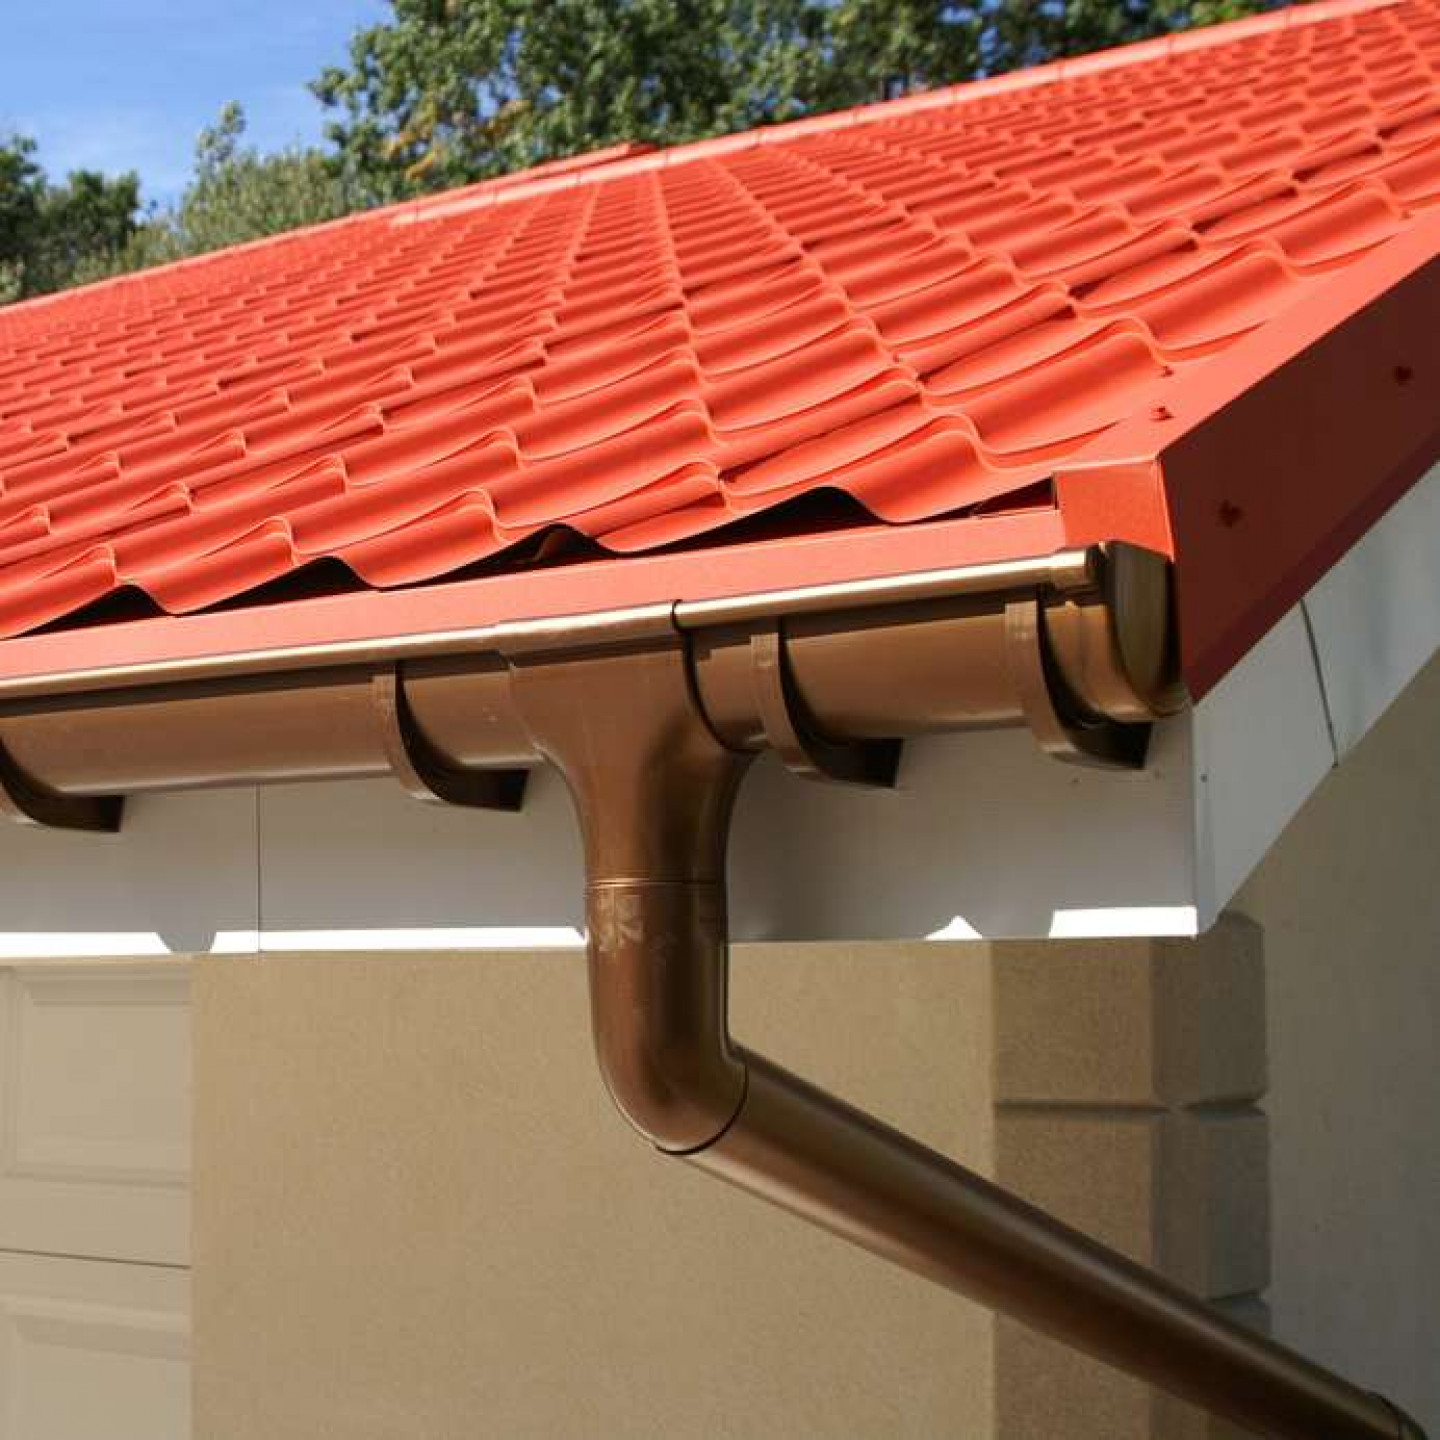 See why seamless aluminum gutters are the way to go